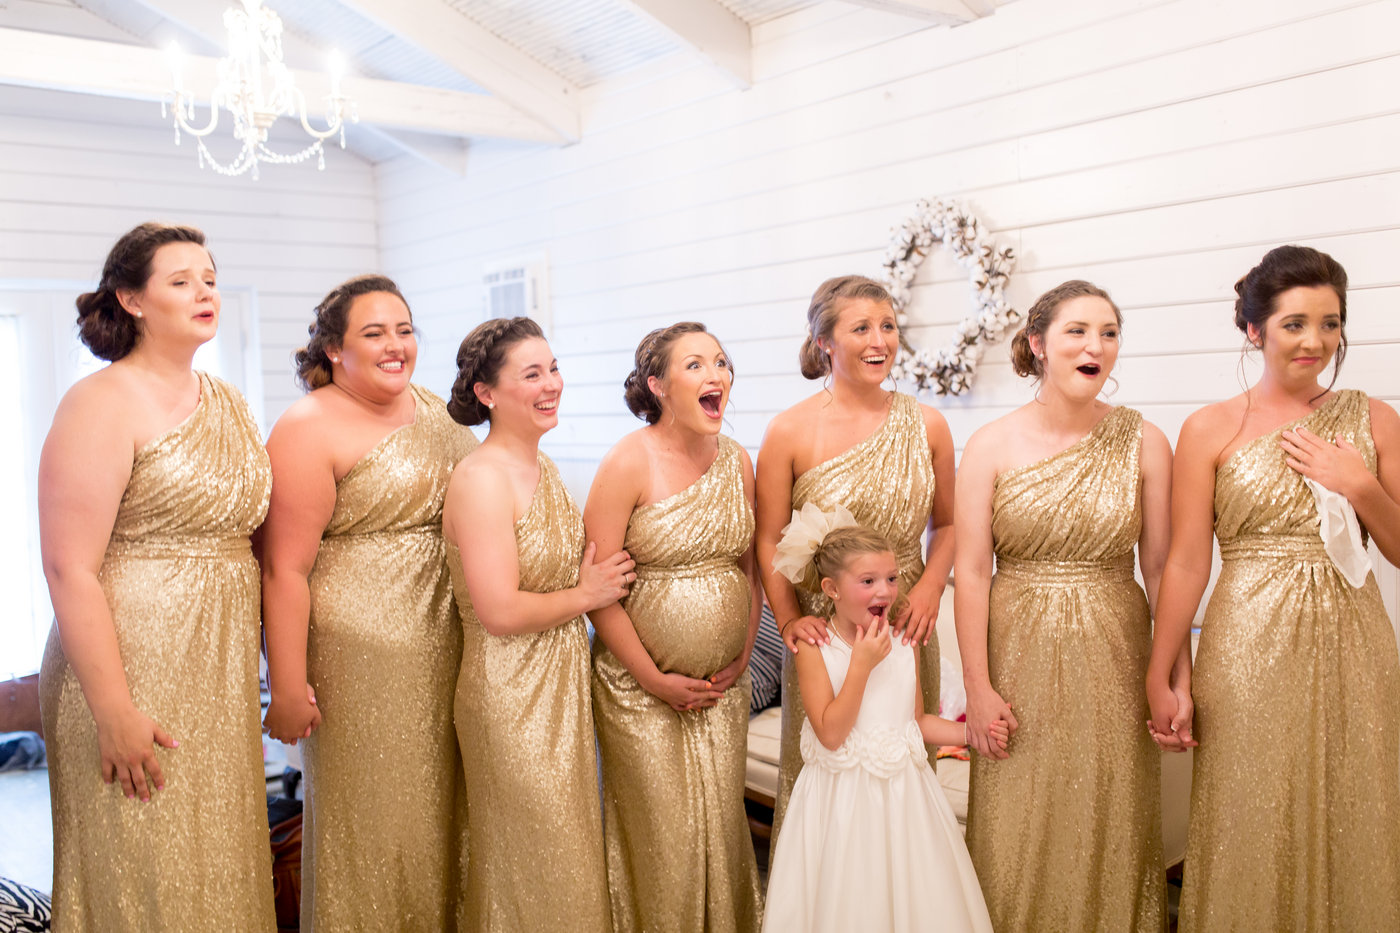 Beautiful brides in Starta dress and ivory gold and see friend on her wedding day